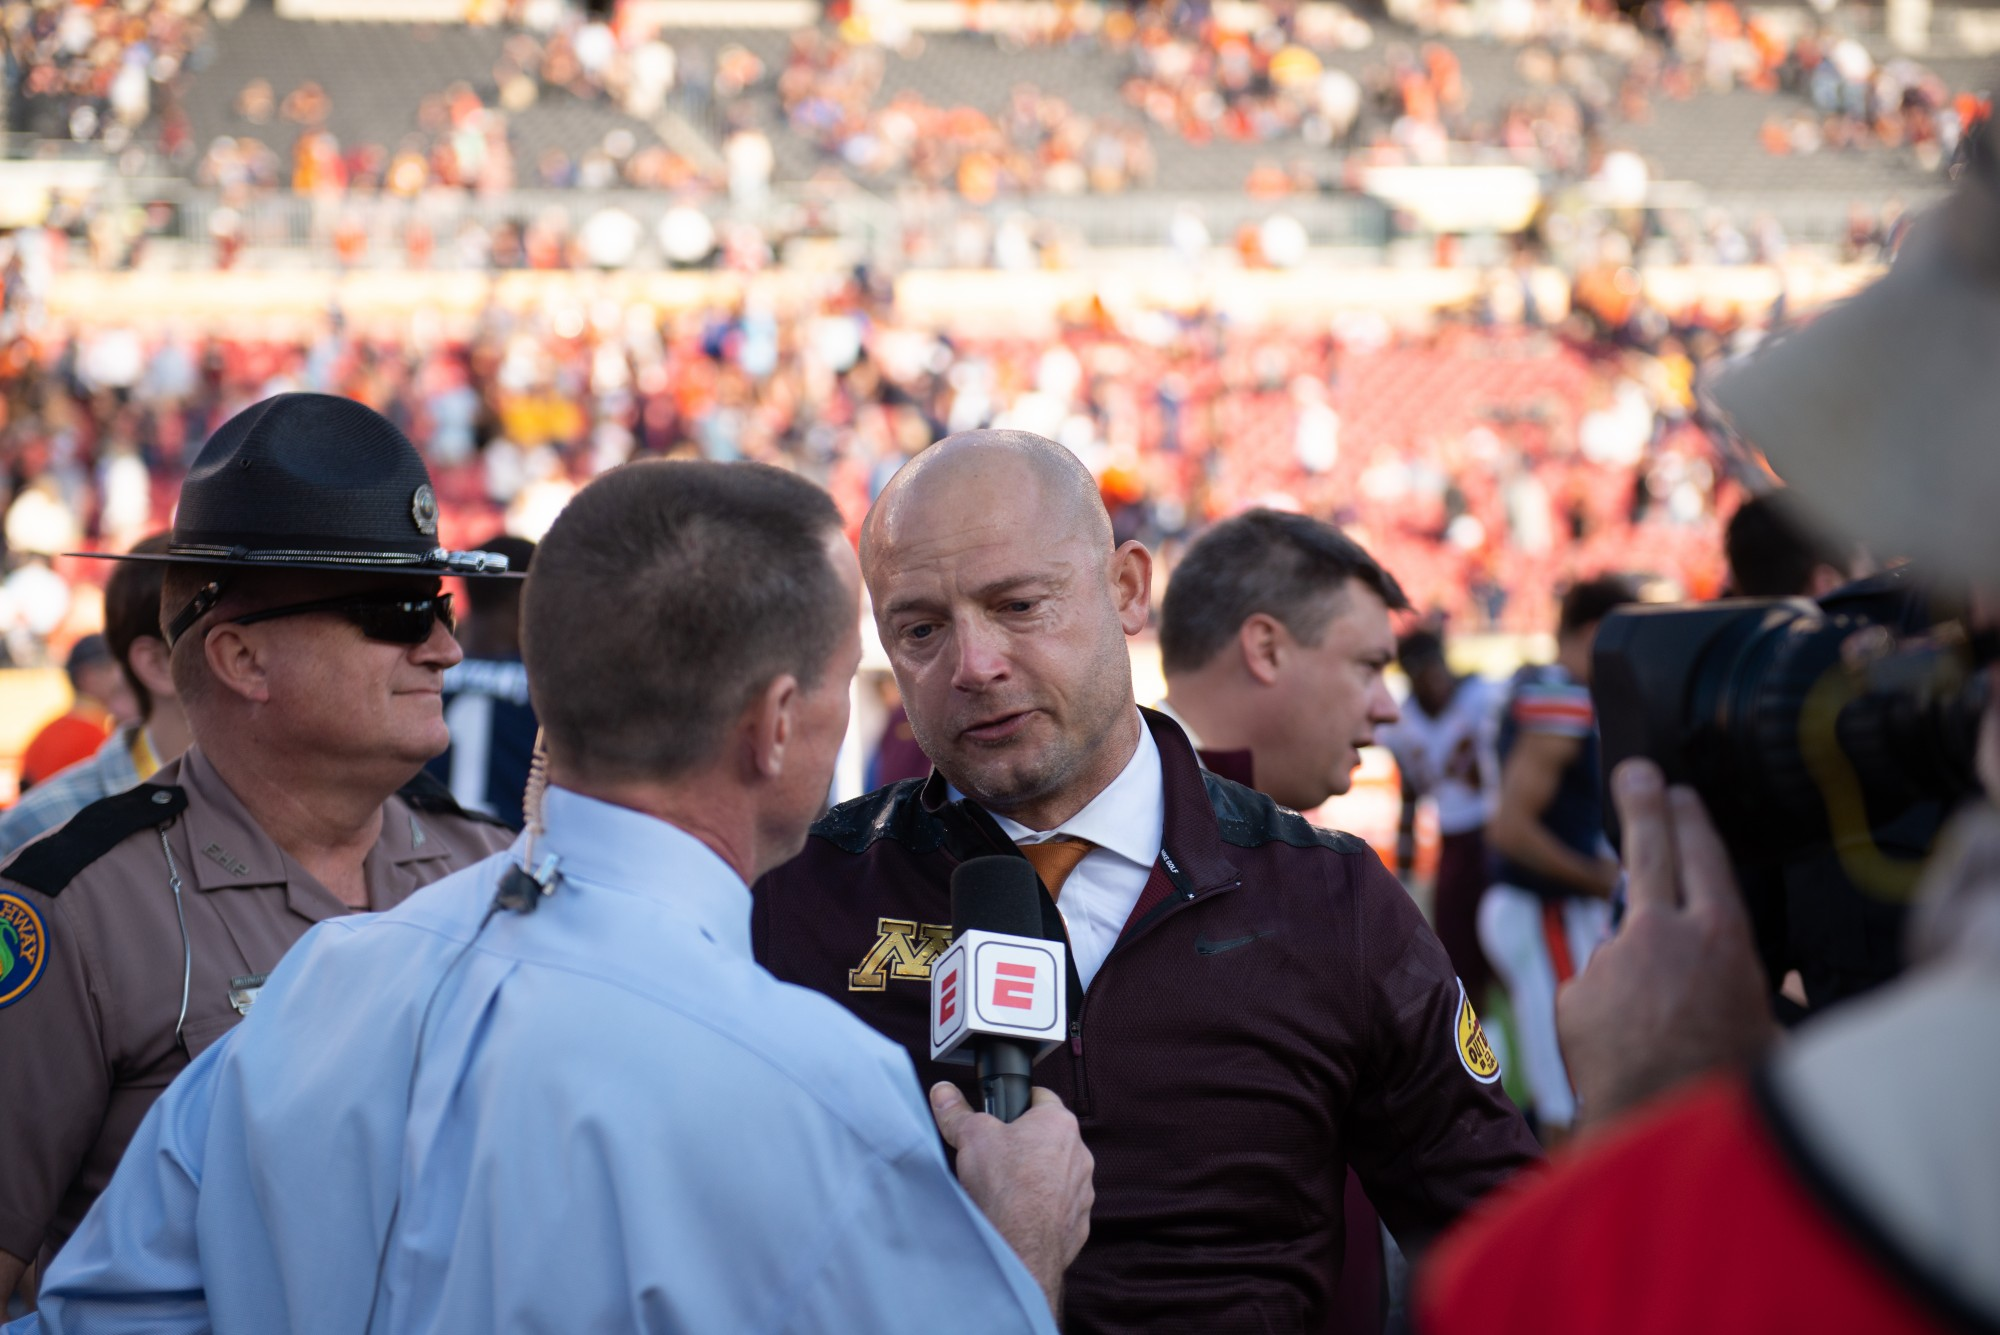 Gophers Head Coach P.J. Fleck talks to reporters after the game at Raymond James Stadium in Tampa, Florida on Wednesday, Jan. 1. Minnesota took the bowl game with a 31-24 win over the Auburn Tigers. (Kamaan Richards / Minnesota Daily)